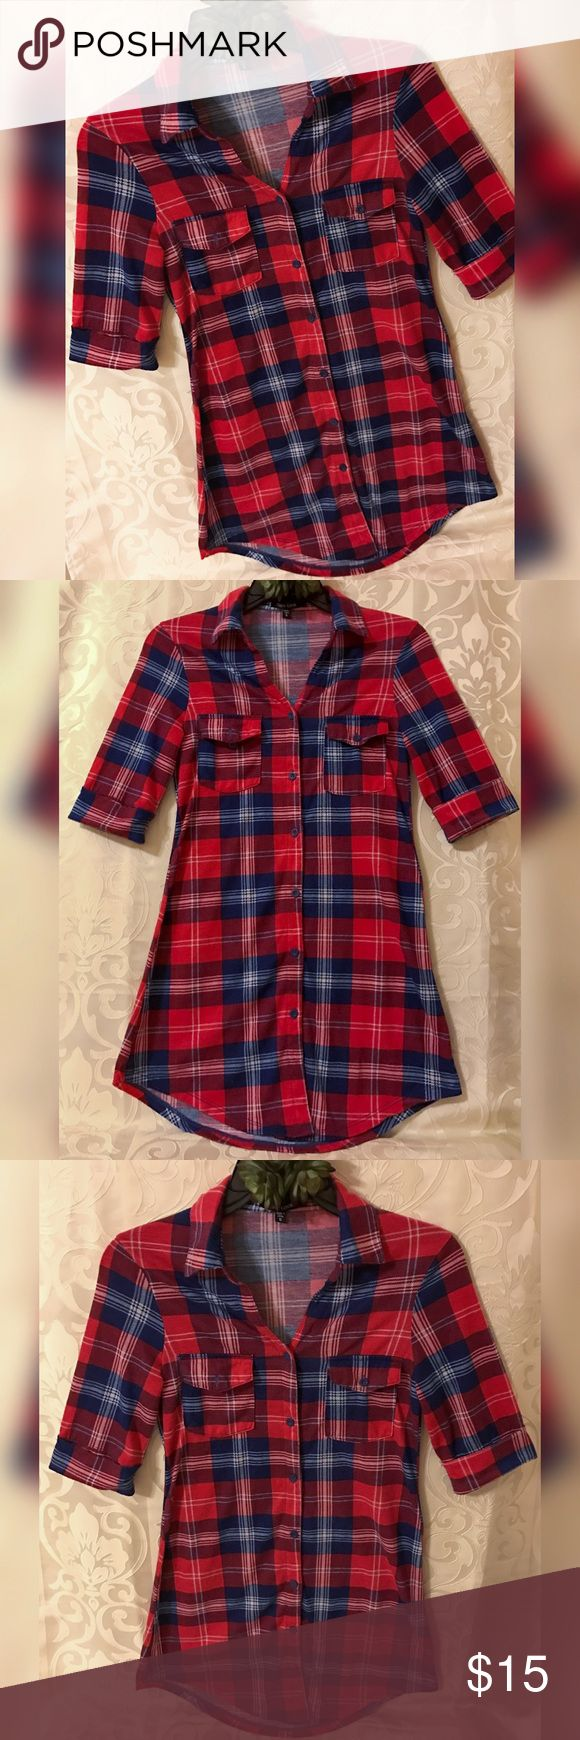 New Look Flannel Button Up Cute red, white, and blue button up long flannel by New Look. Top has 3/4 sleeves and can be worn as a top or dress. This top looks great with leggings. New Look Tops Button Down Shirts